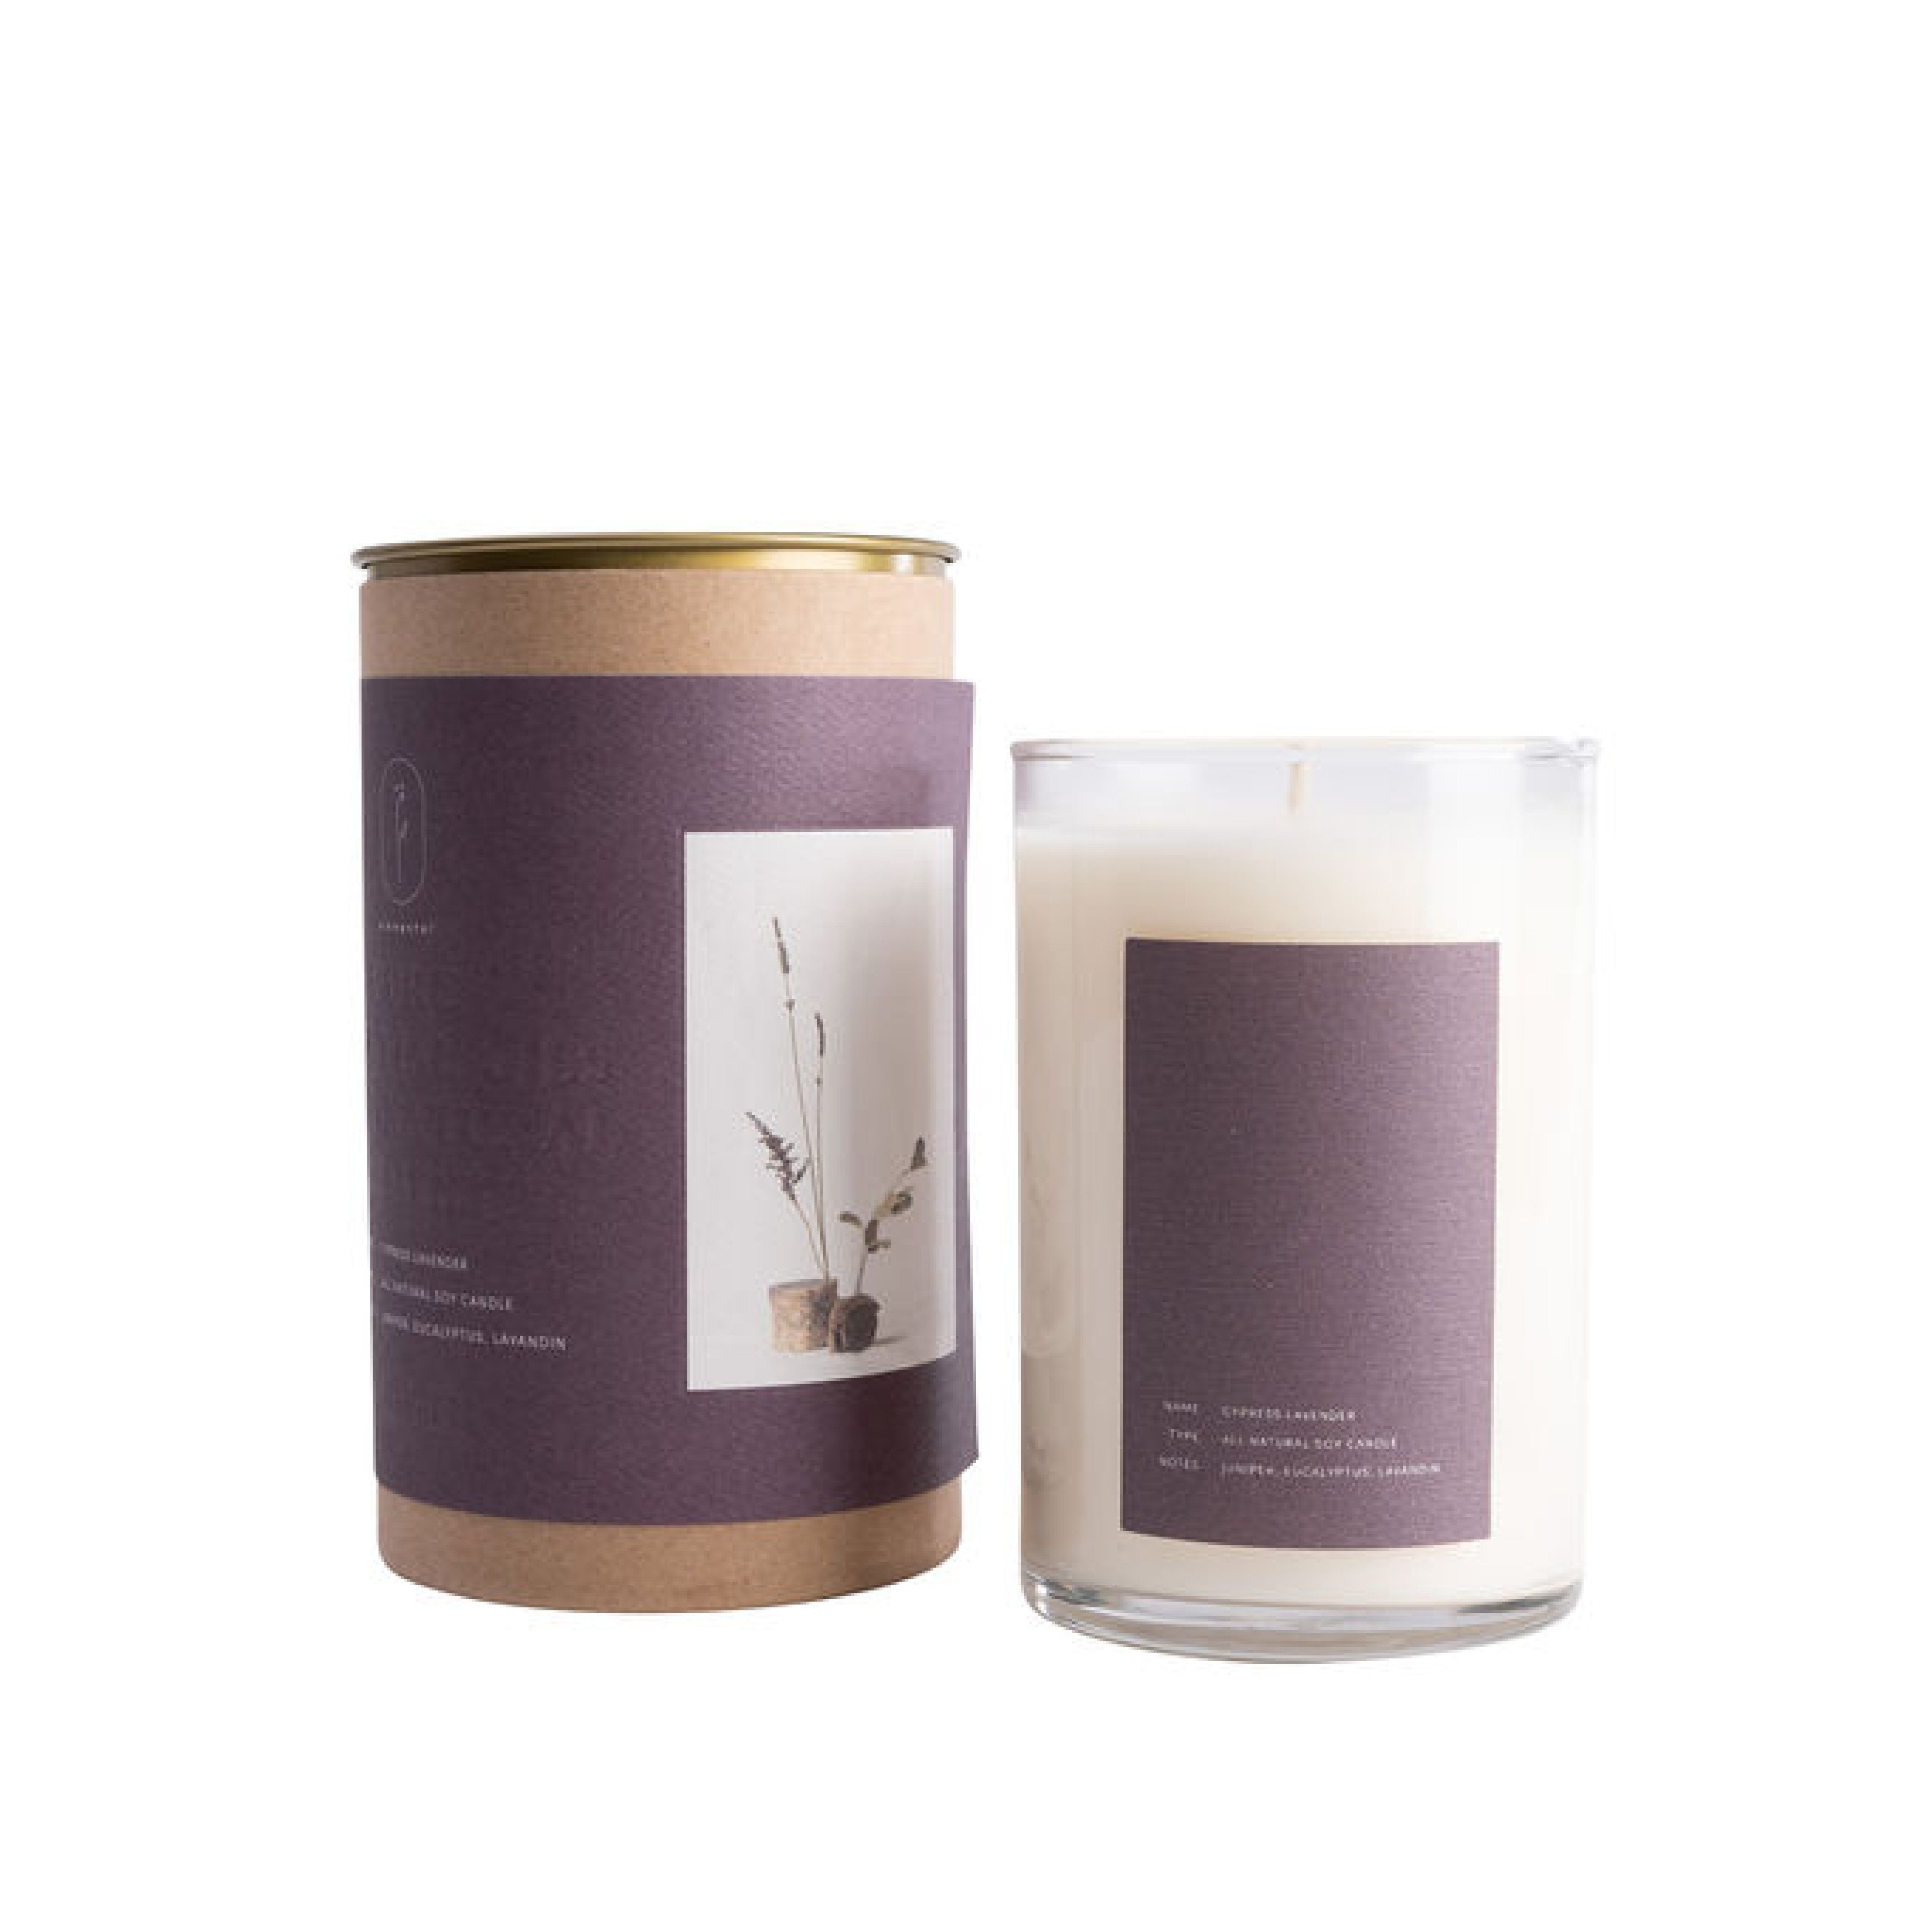 Elemental - Lavender + Cypress Candle Soy wax infused with essential oils